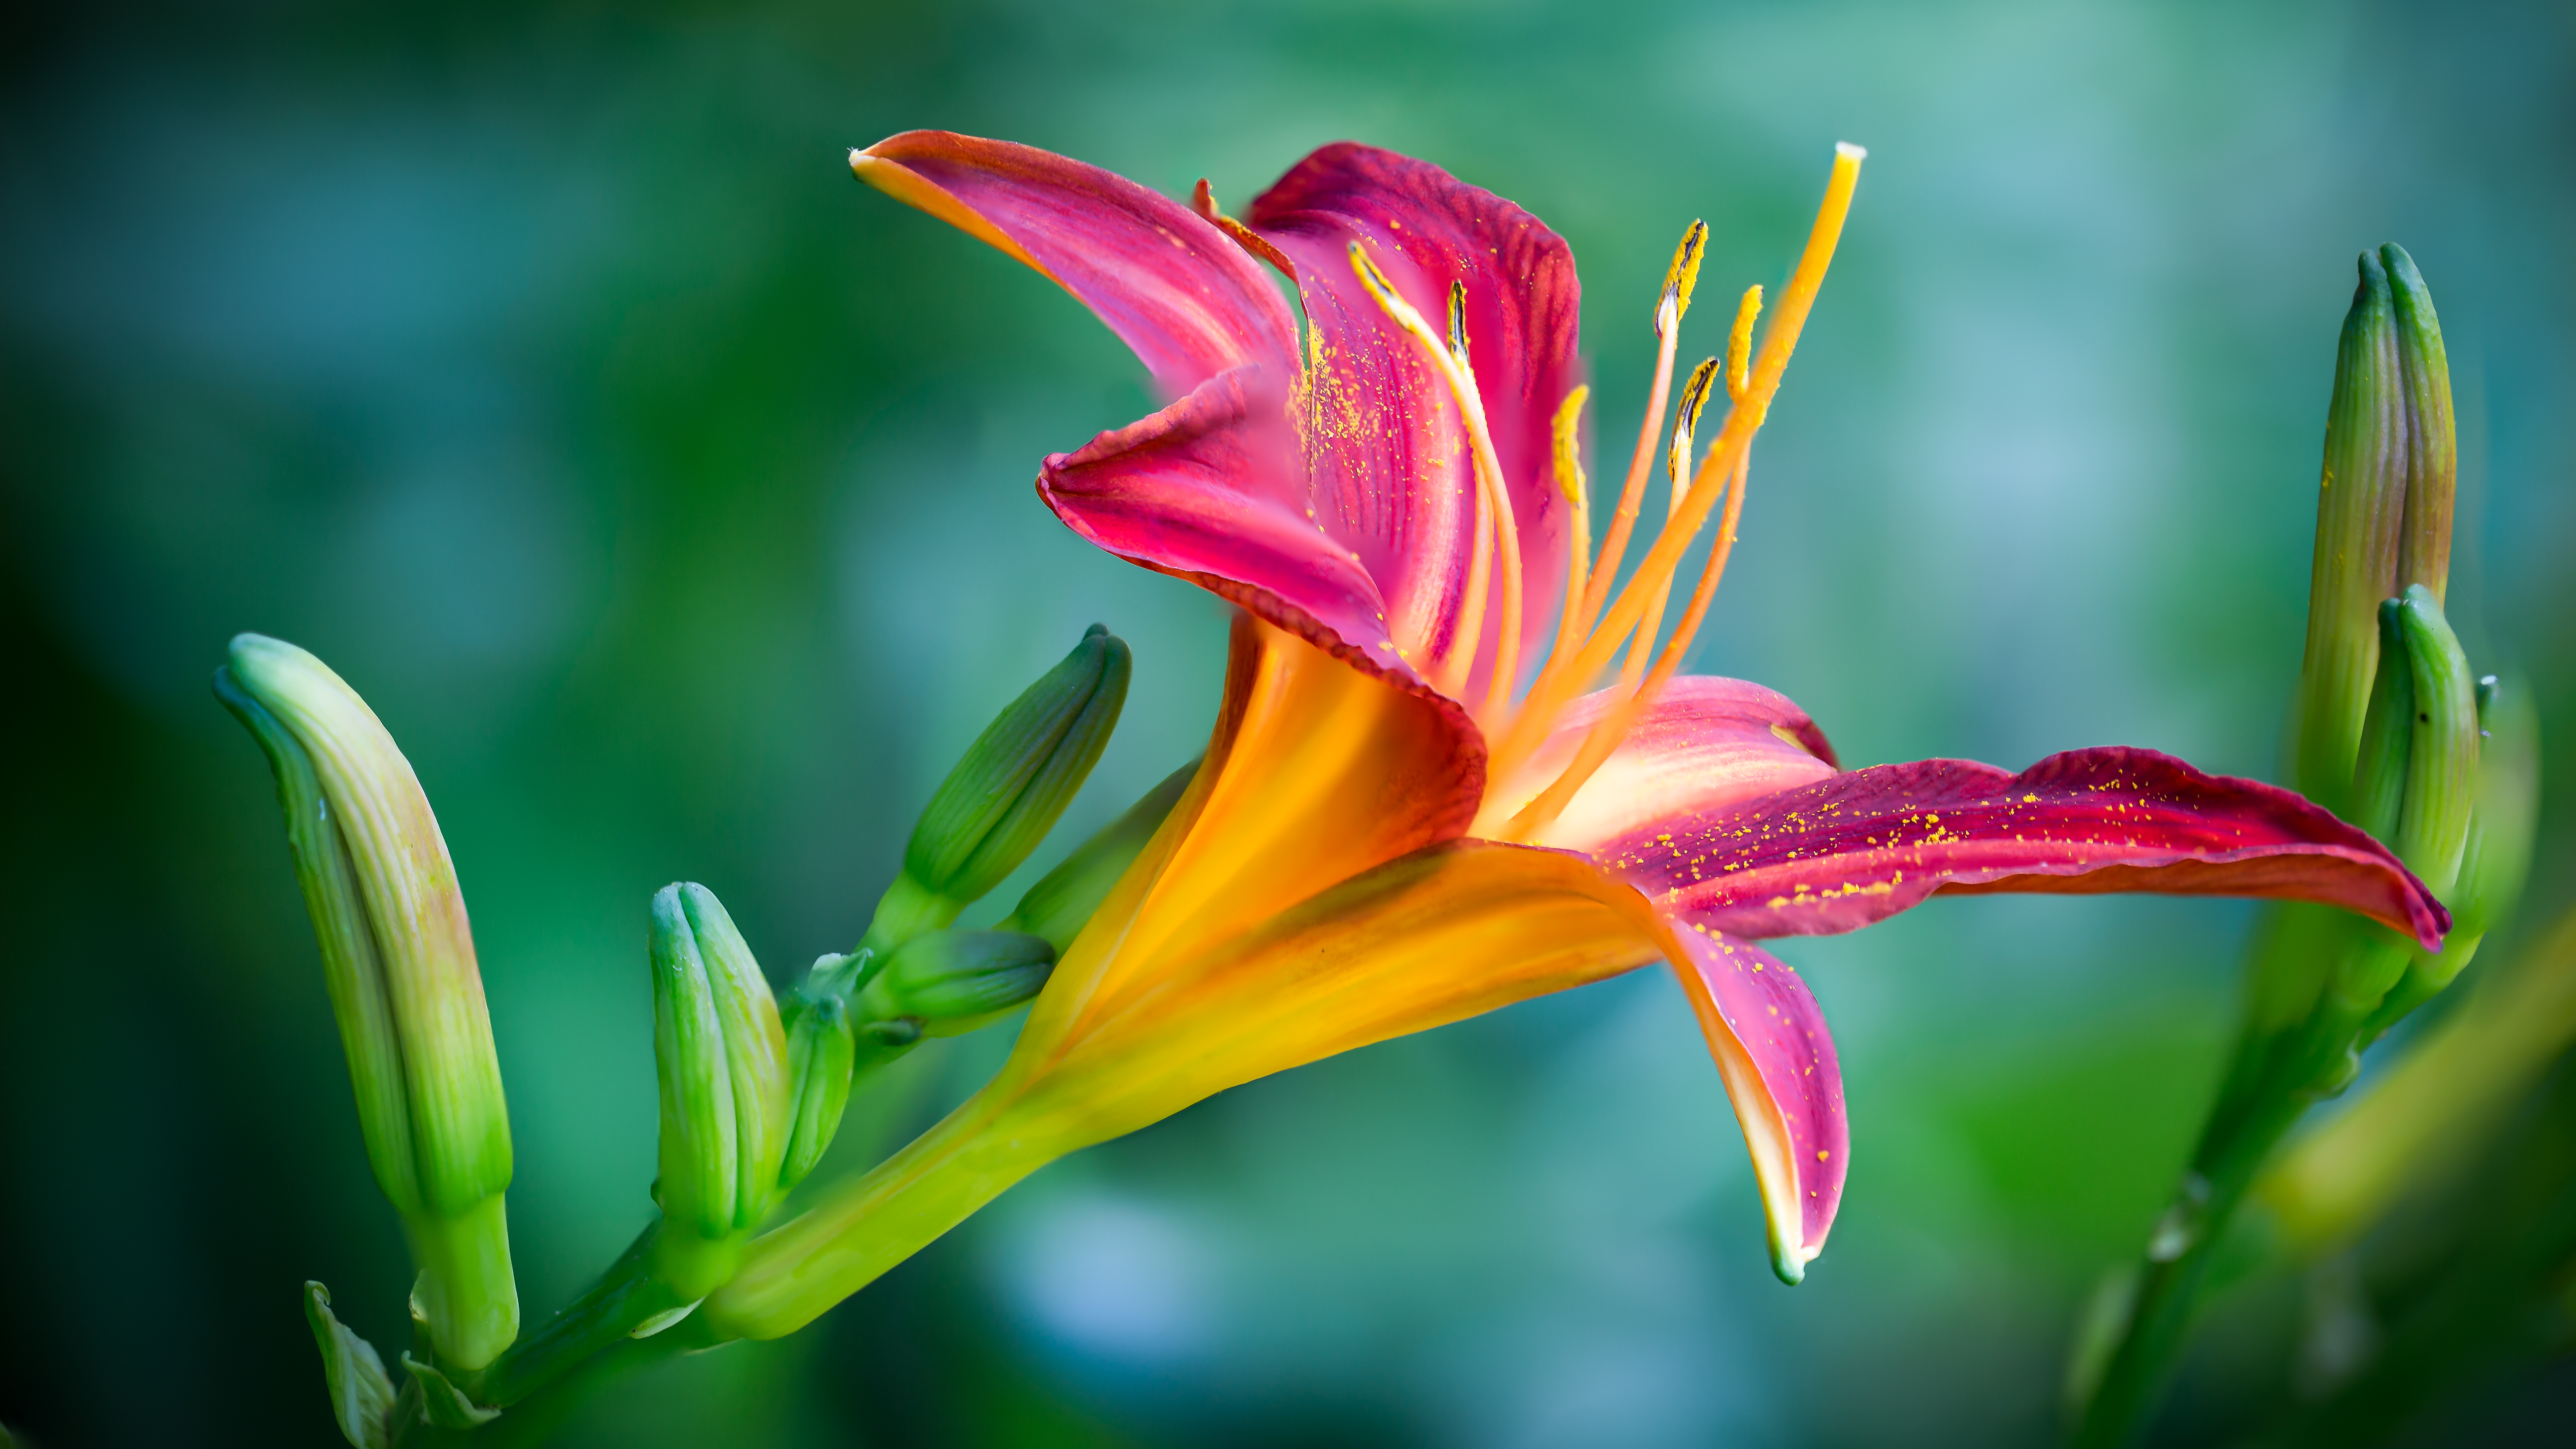 Beautiful pictures of lily flowers